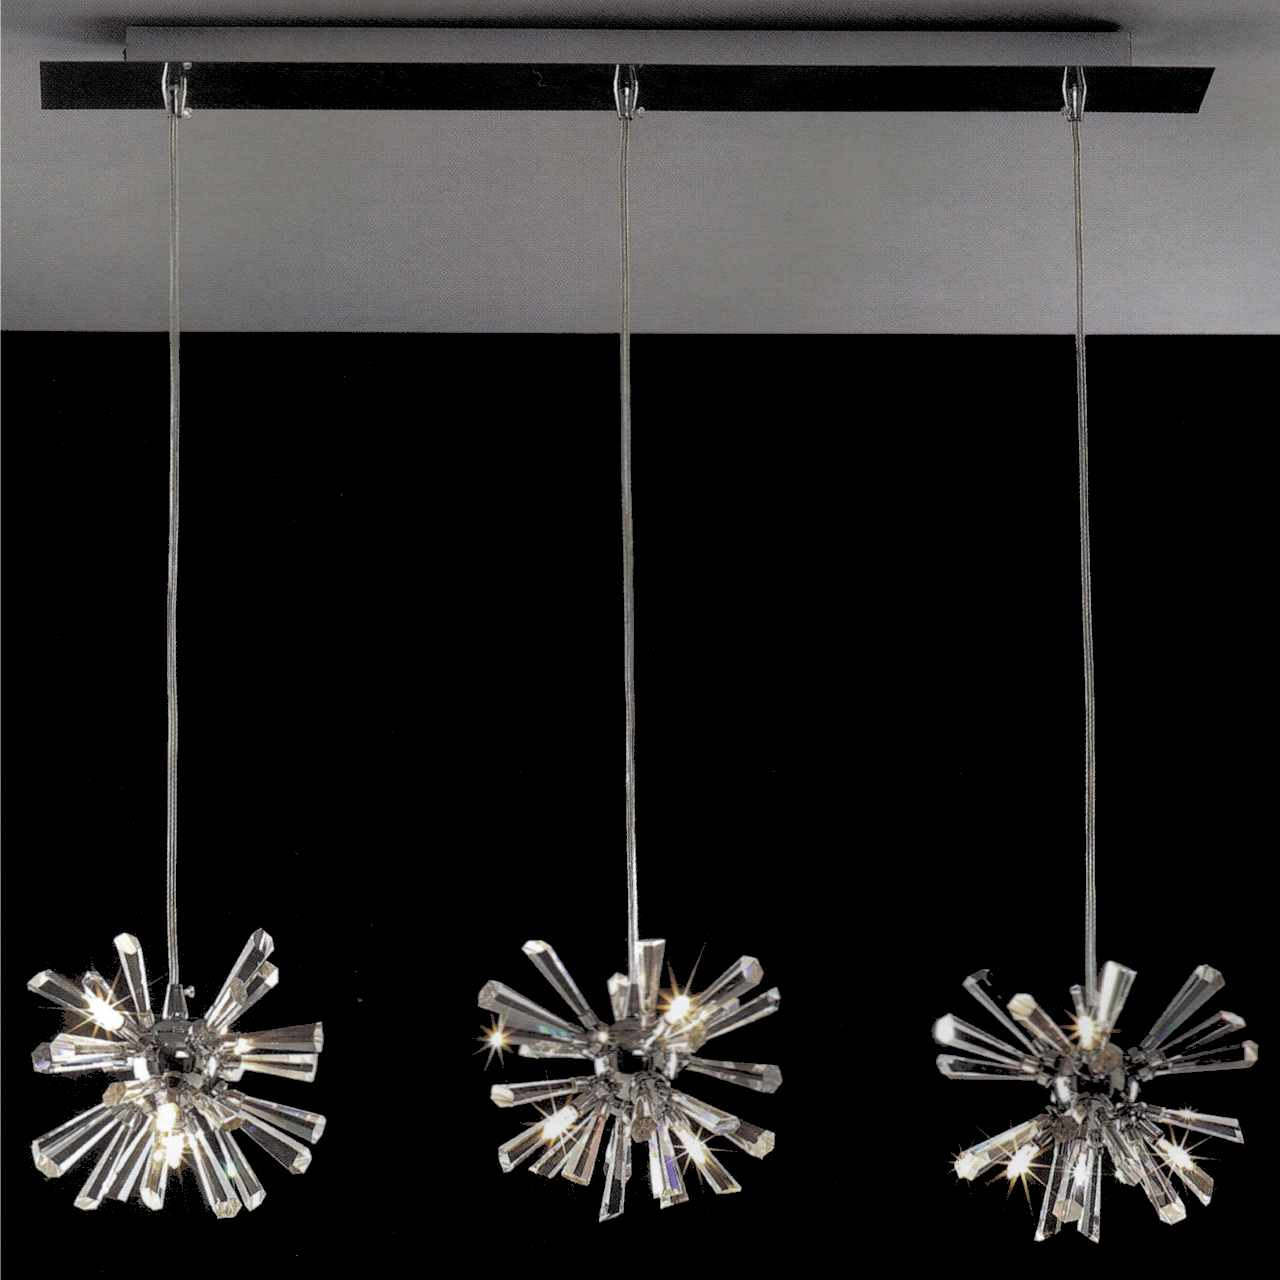 Brizzo lighting stores 28 radiante modern crystal triple pendants picture of 28 radiante modern crystal triple pendants polished chrome 12 lights mozeypictures